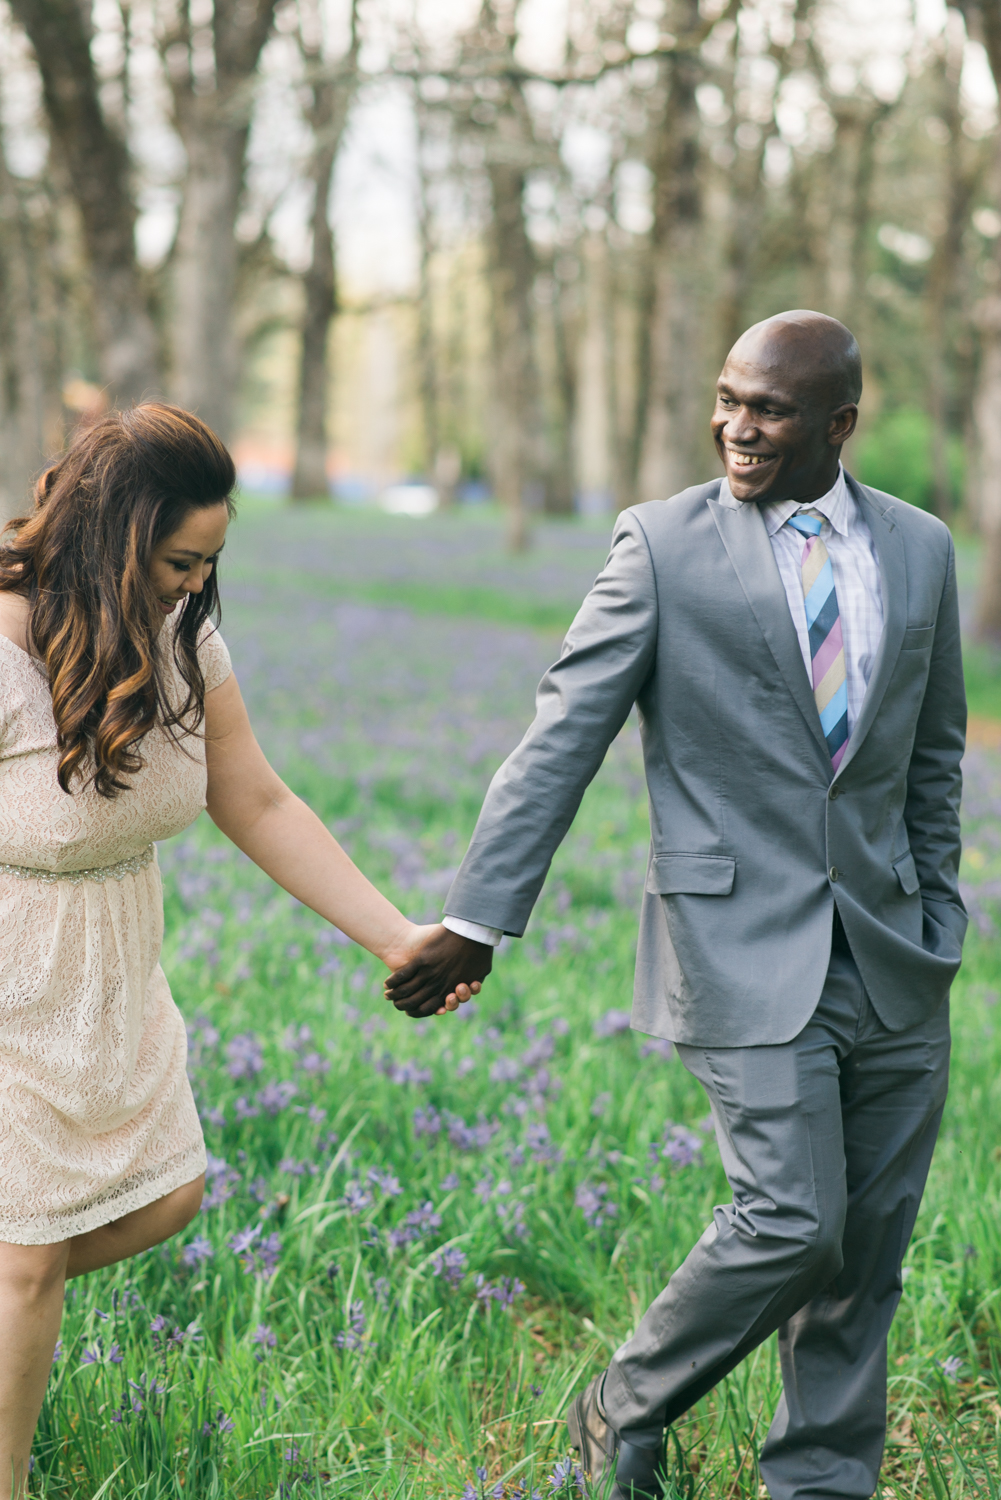 romantic-salem-engagement-photos-bush-park-shelley-marie-photo-12